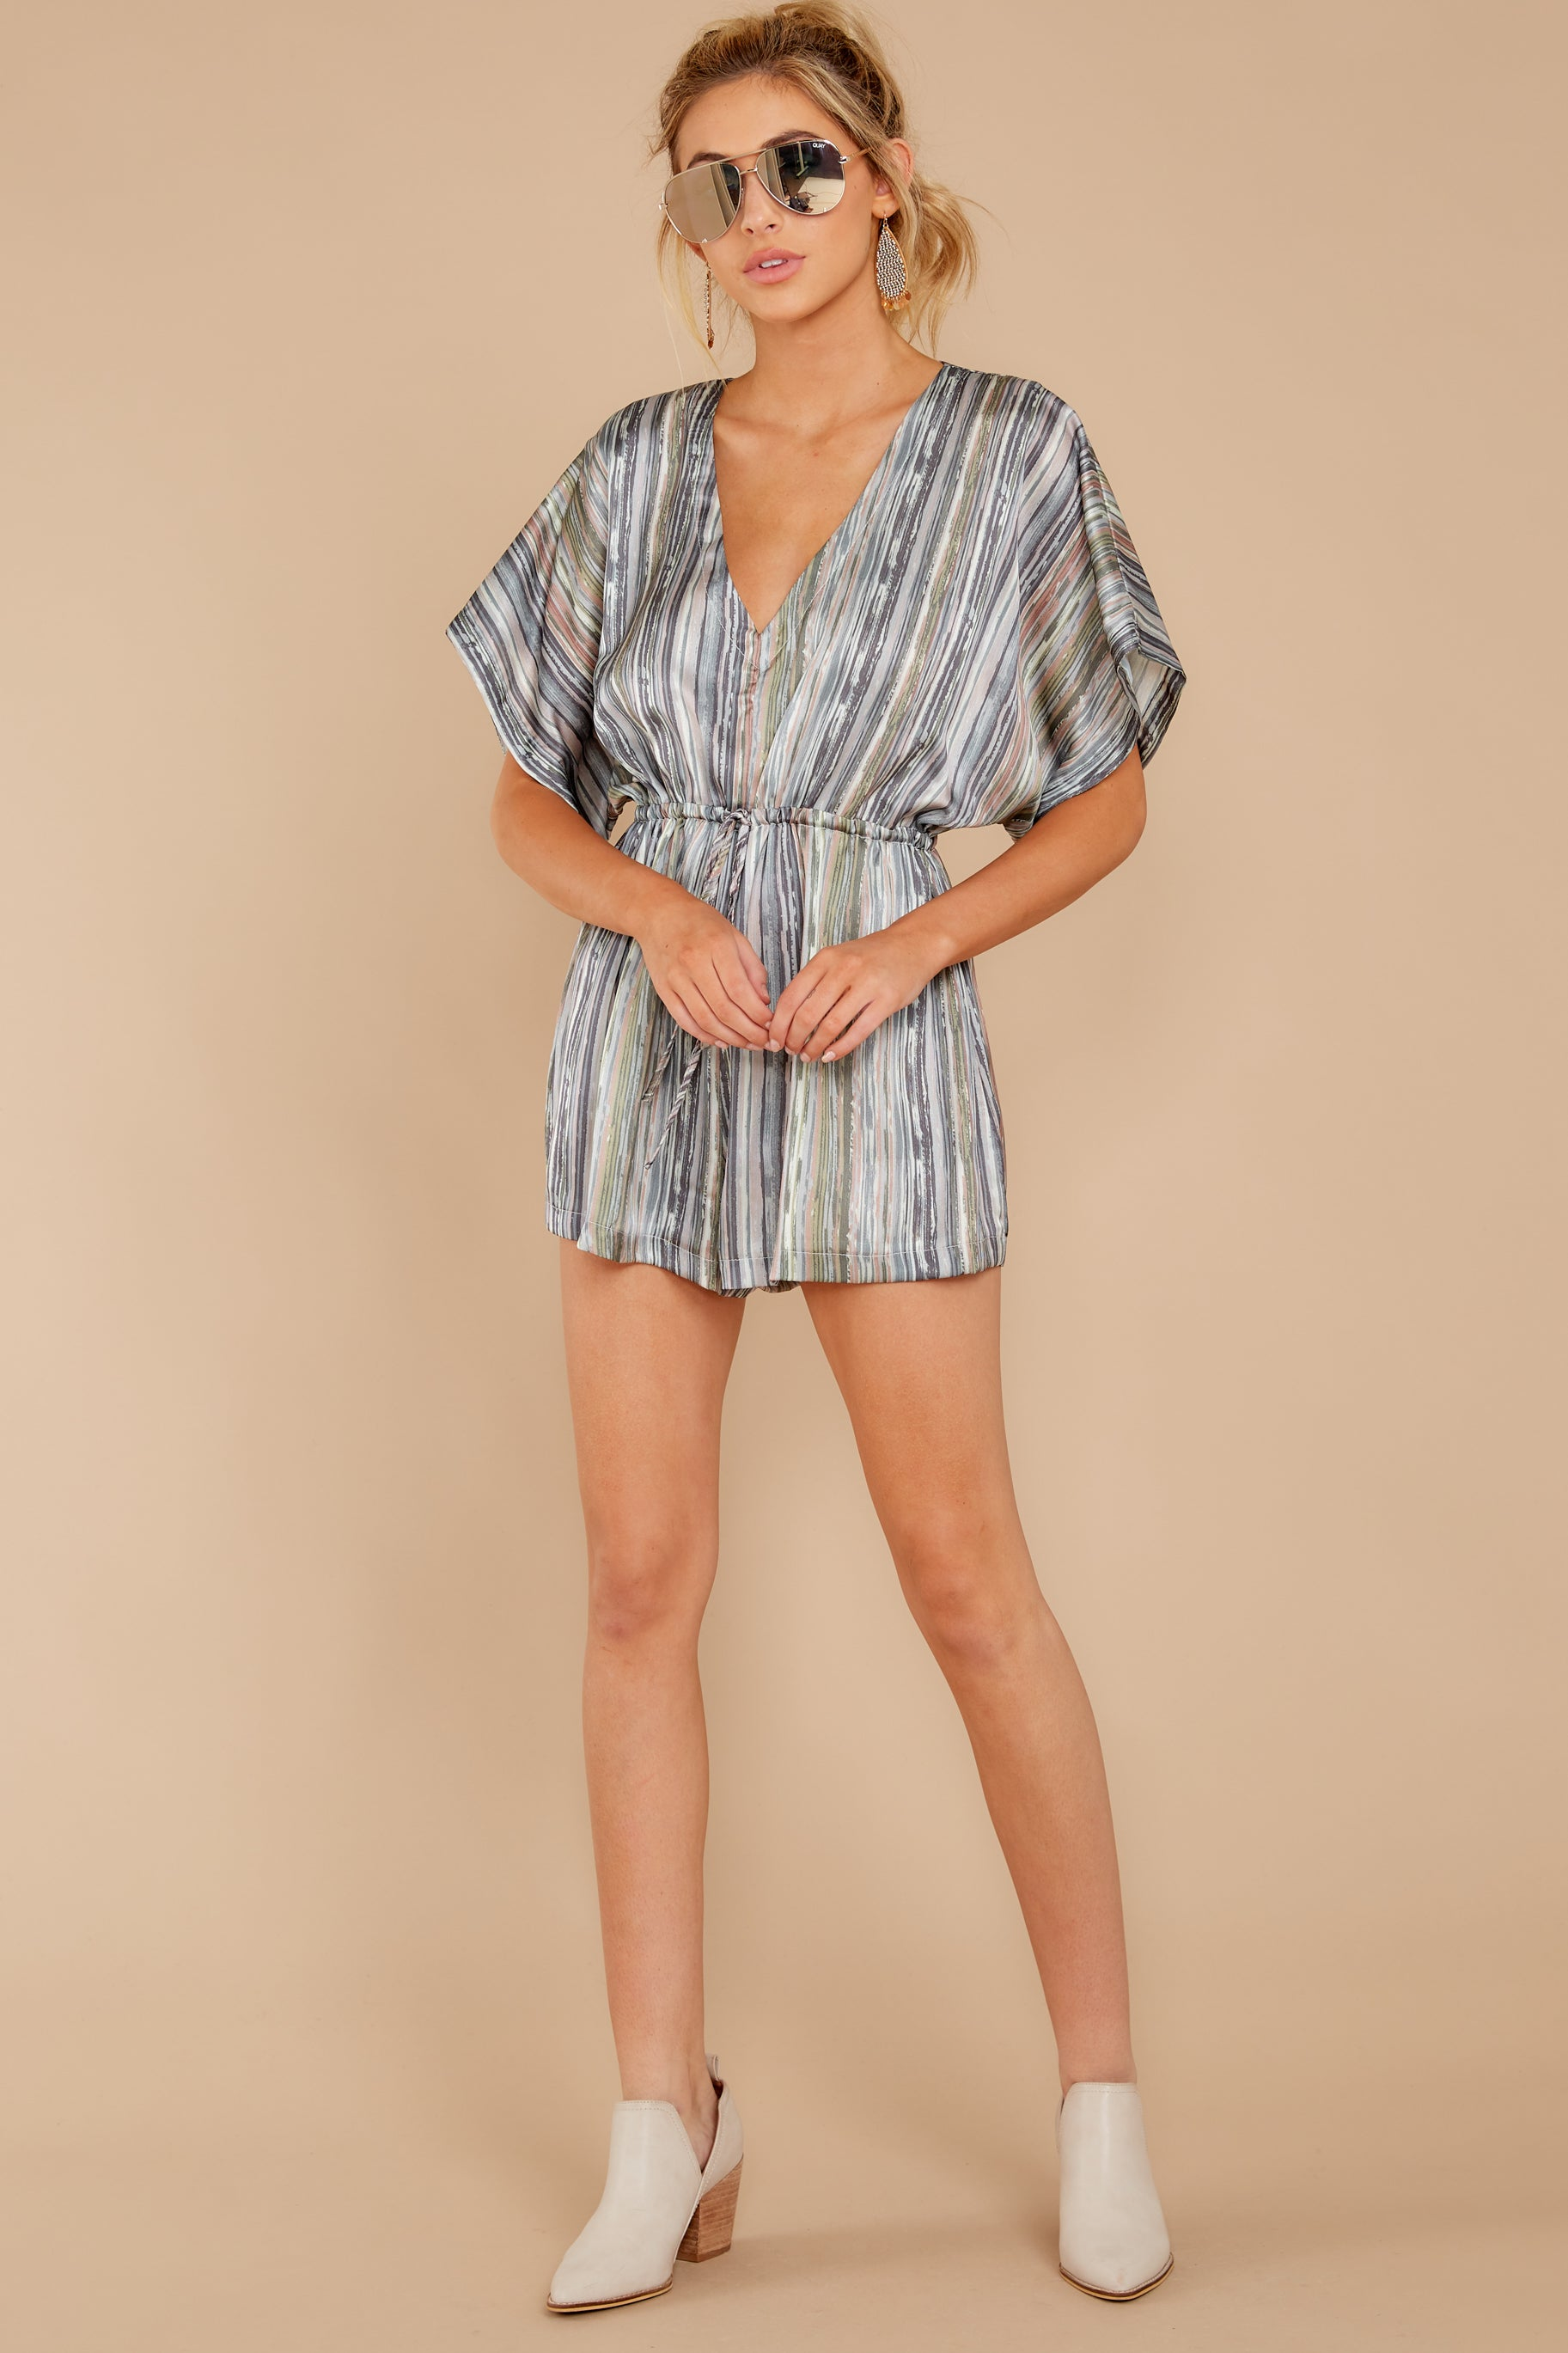 Savor This Moment Olive Green Multi Print Romper